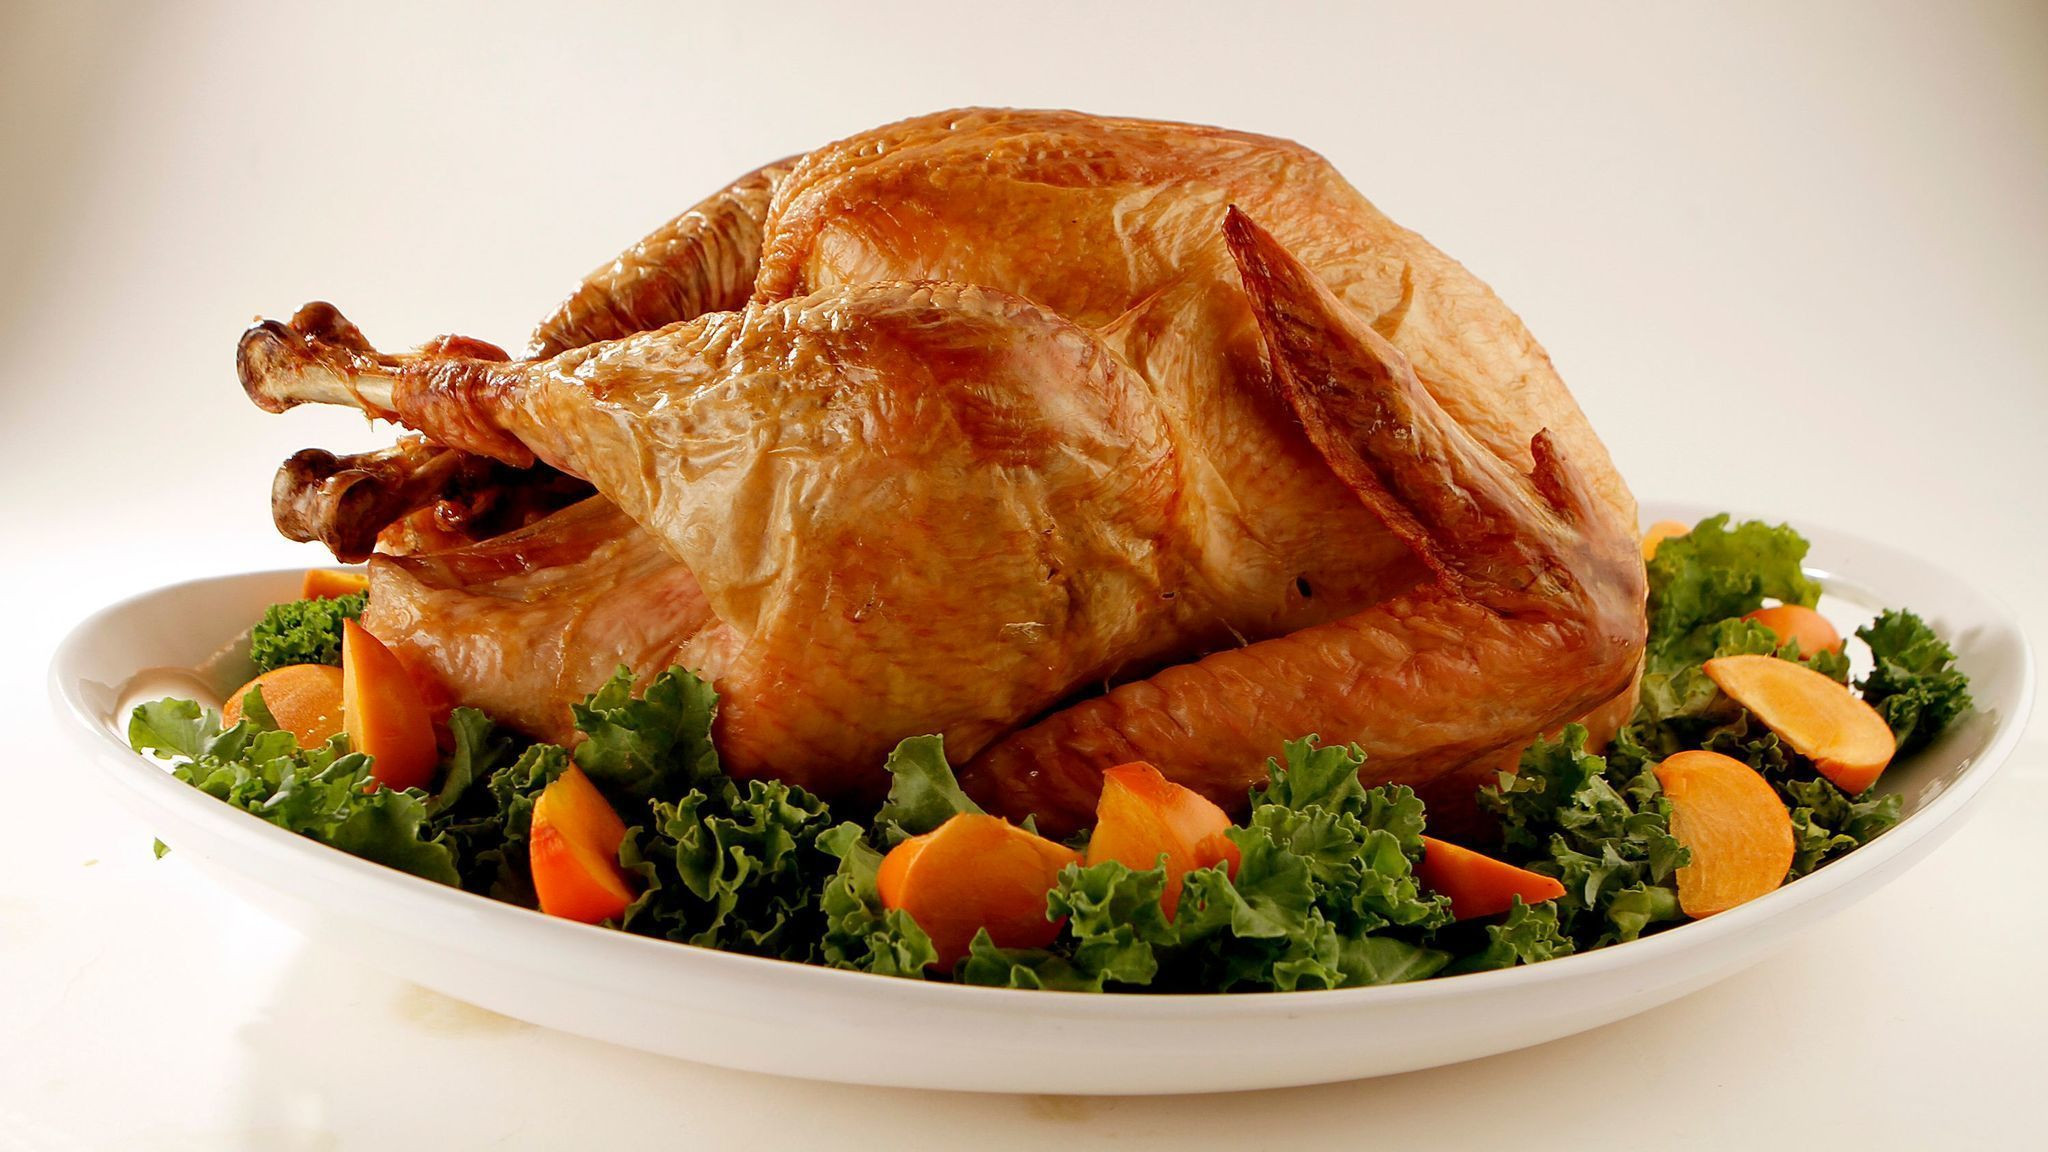 Cook Thanksgiving Turkey  A beginner s guide to cooking a Thanksgiving turkey LA Times